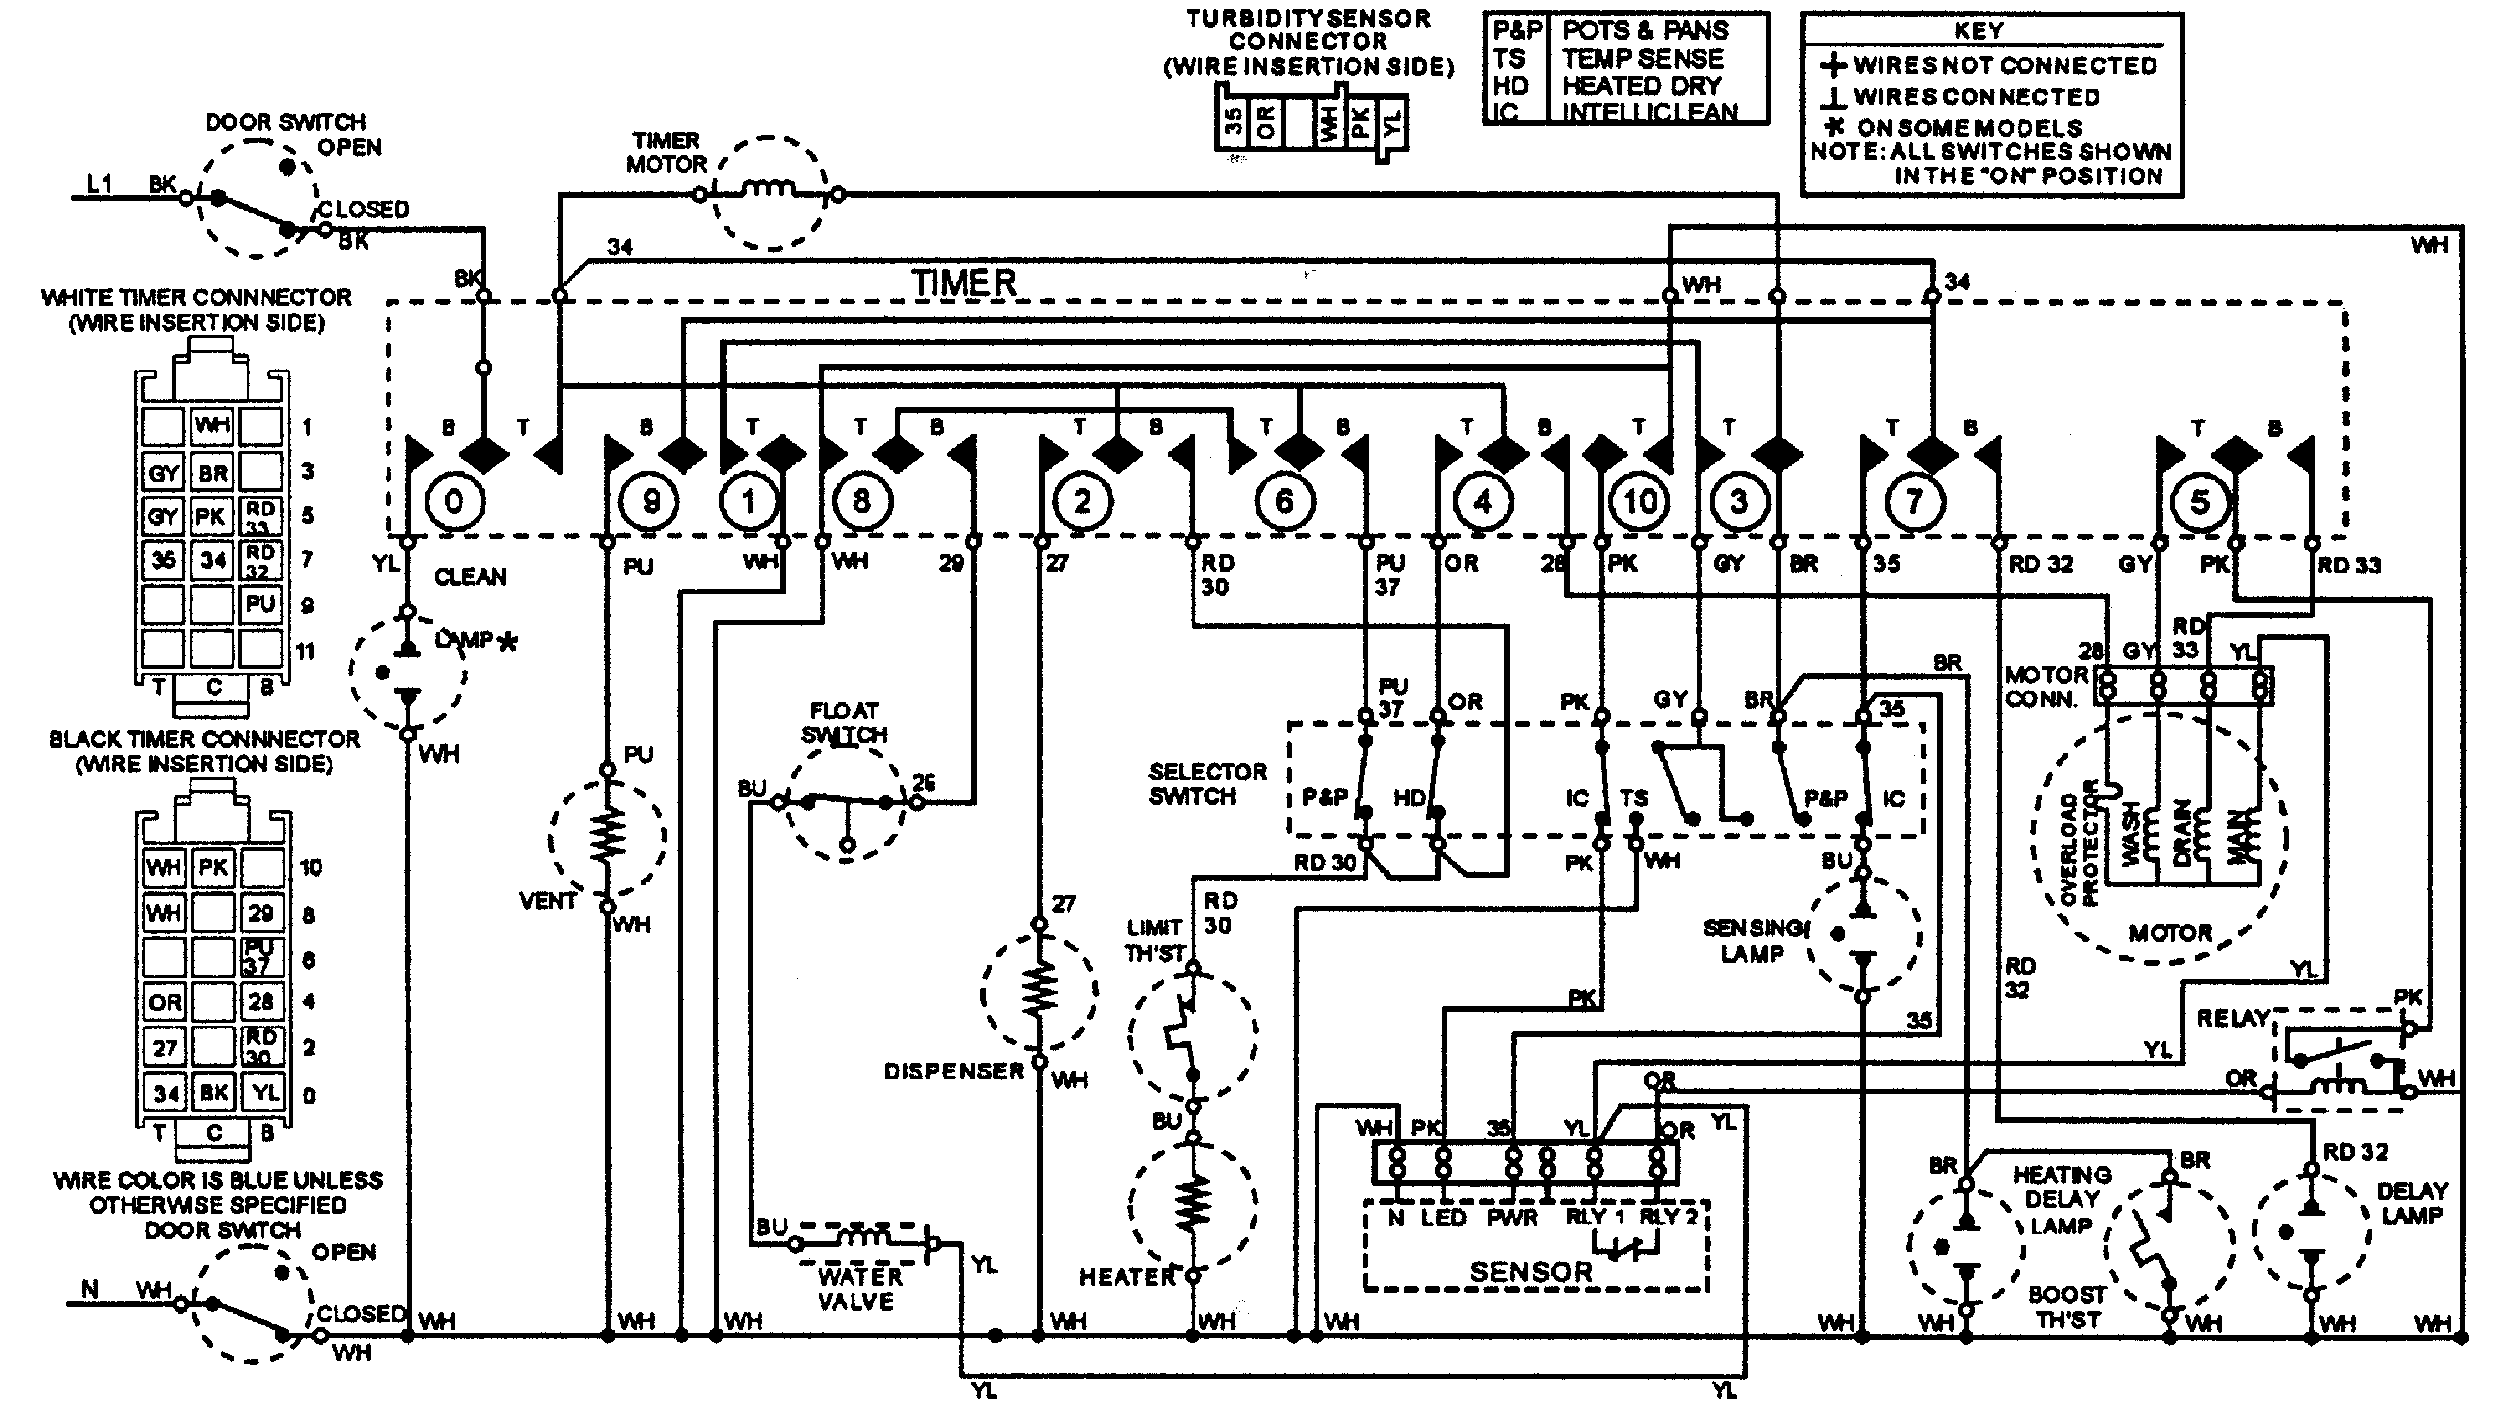 [SCHEMATICS_48IS]  Whirlpool Washing Machine Wiring Diagram And | Whirlpool washing machine, Washing  machine, Washing | Whirlpool Semi Automatic Washing Machine Wiring Diagram |  | Pinterest